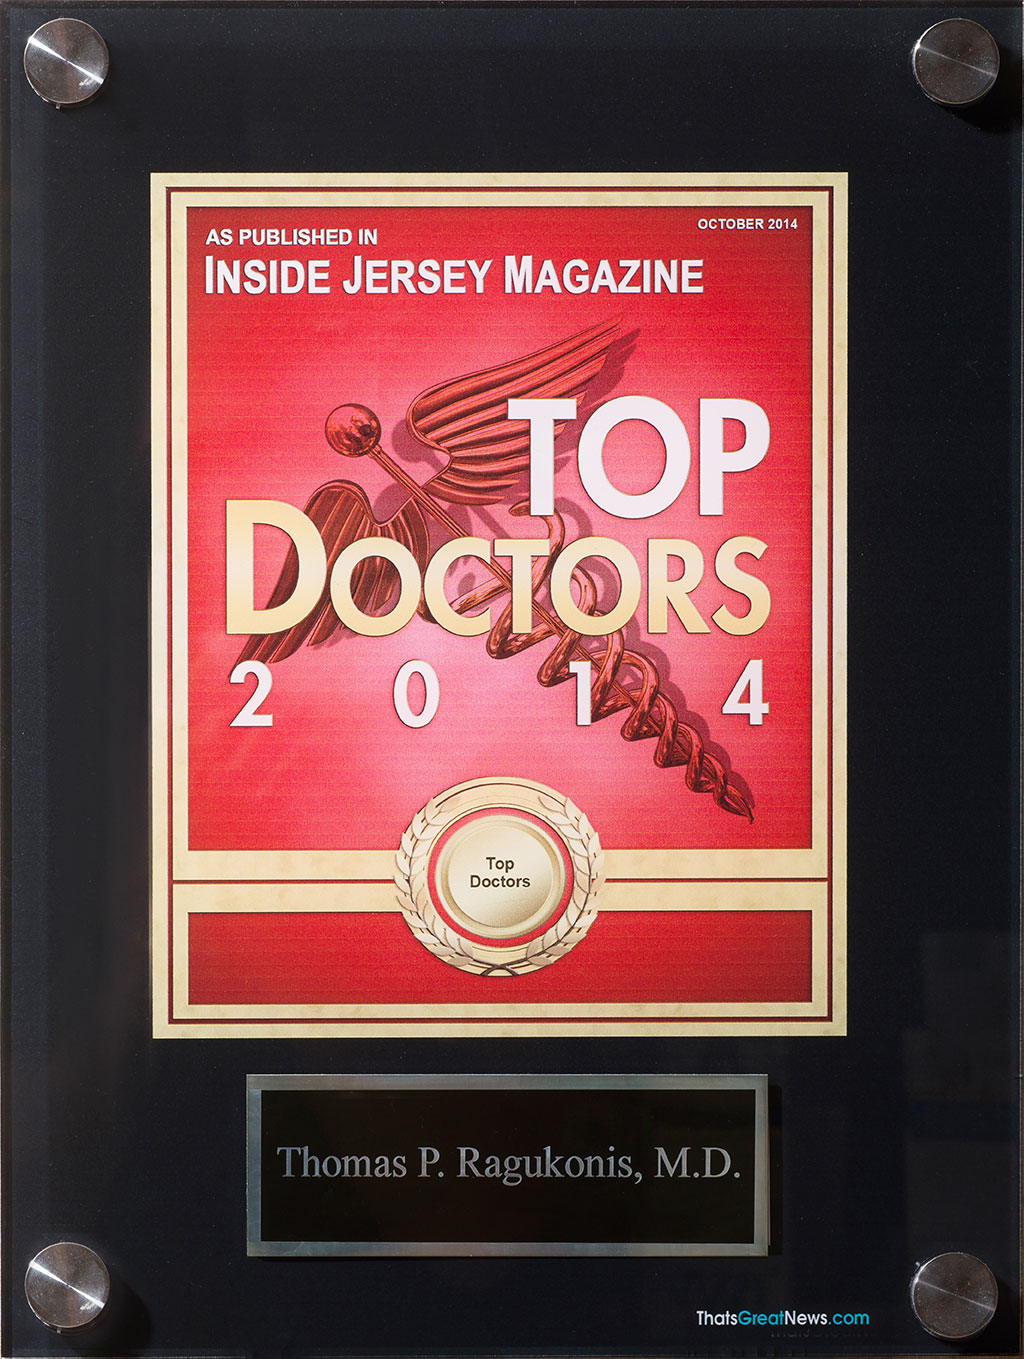 Inside Jersey Magazine Tops Doctors 2014